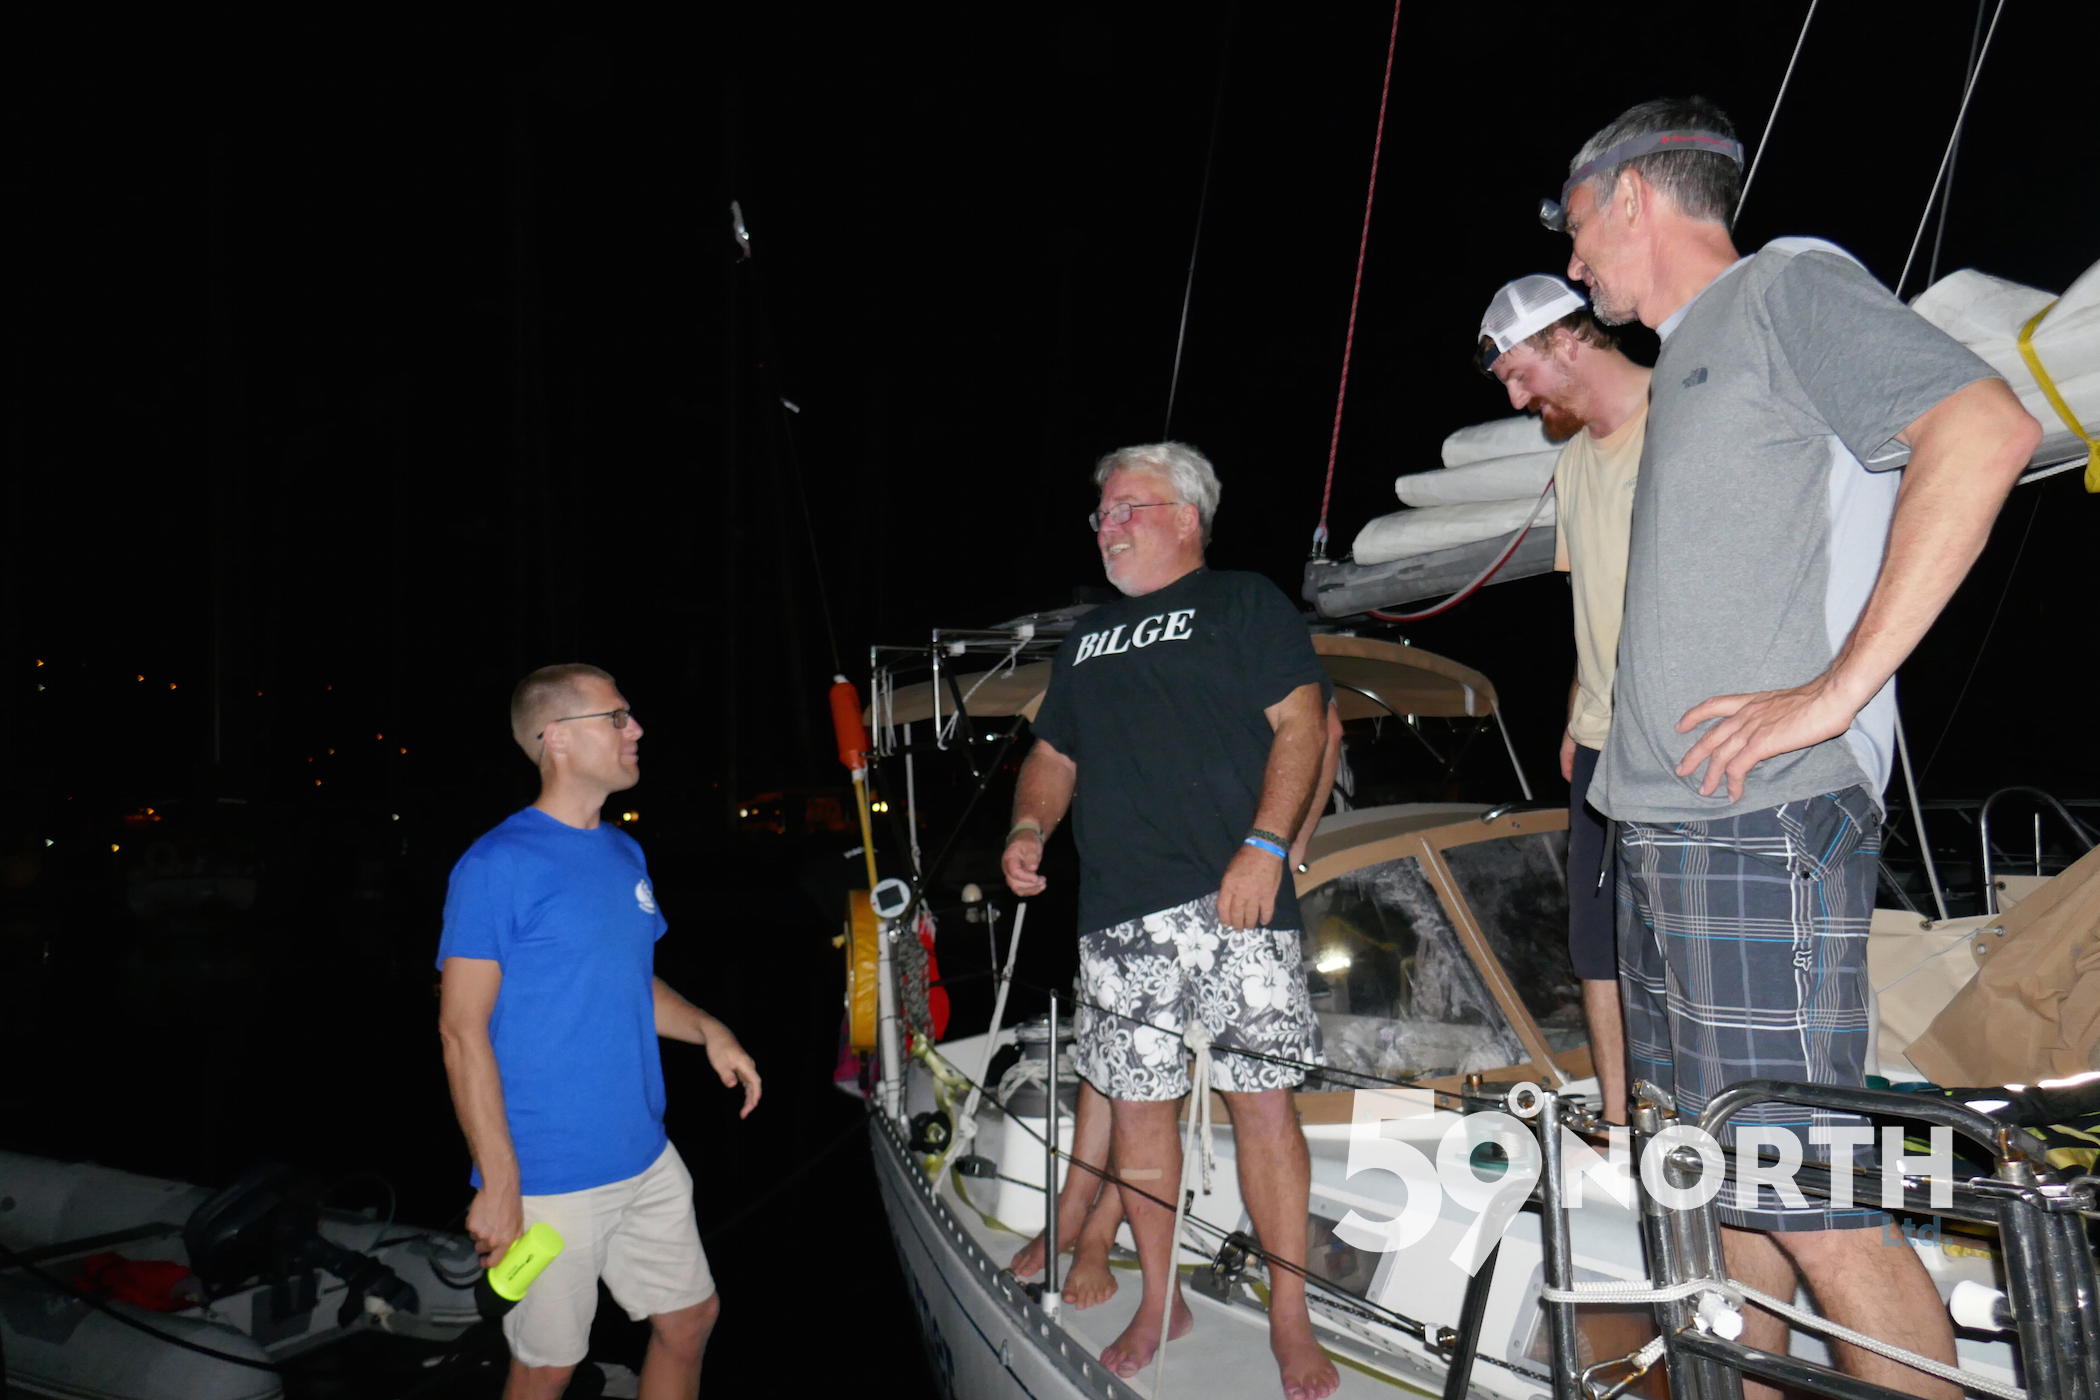 Andy's dad Dennis and crew on Sojourner arrived to BVI a few days after Isbjorn in the C1500. First time they both were out sailing at the same time but on different boats.November 2016